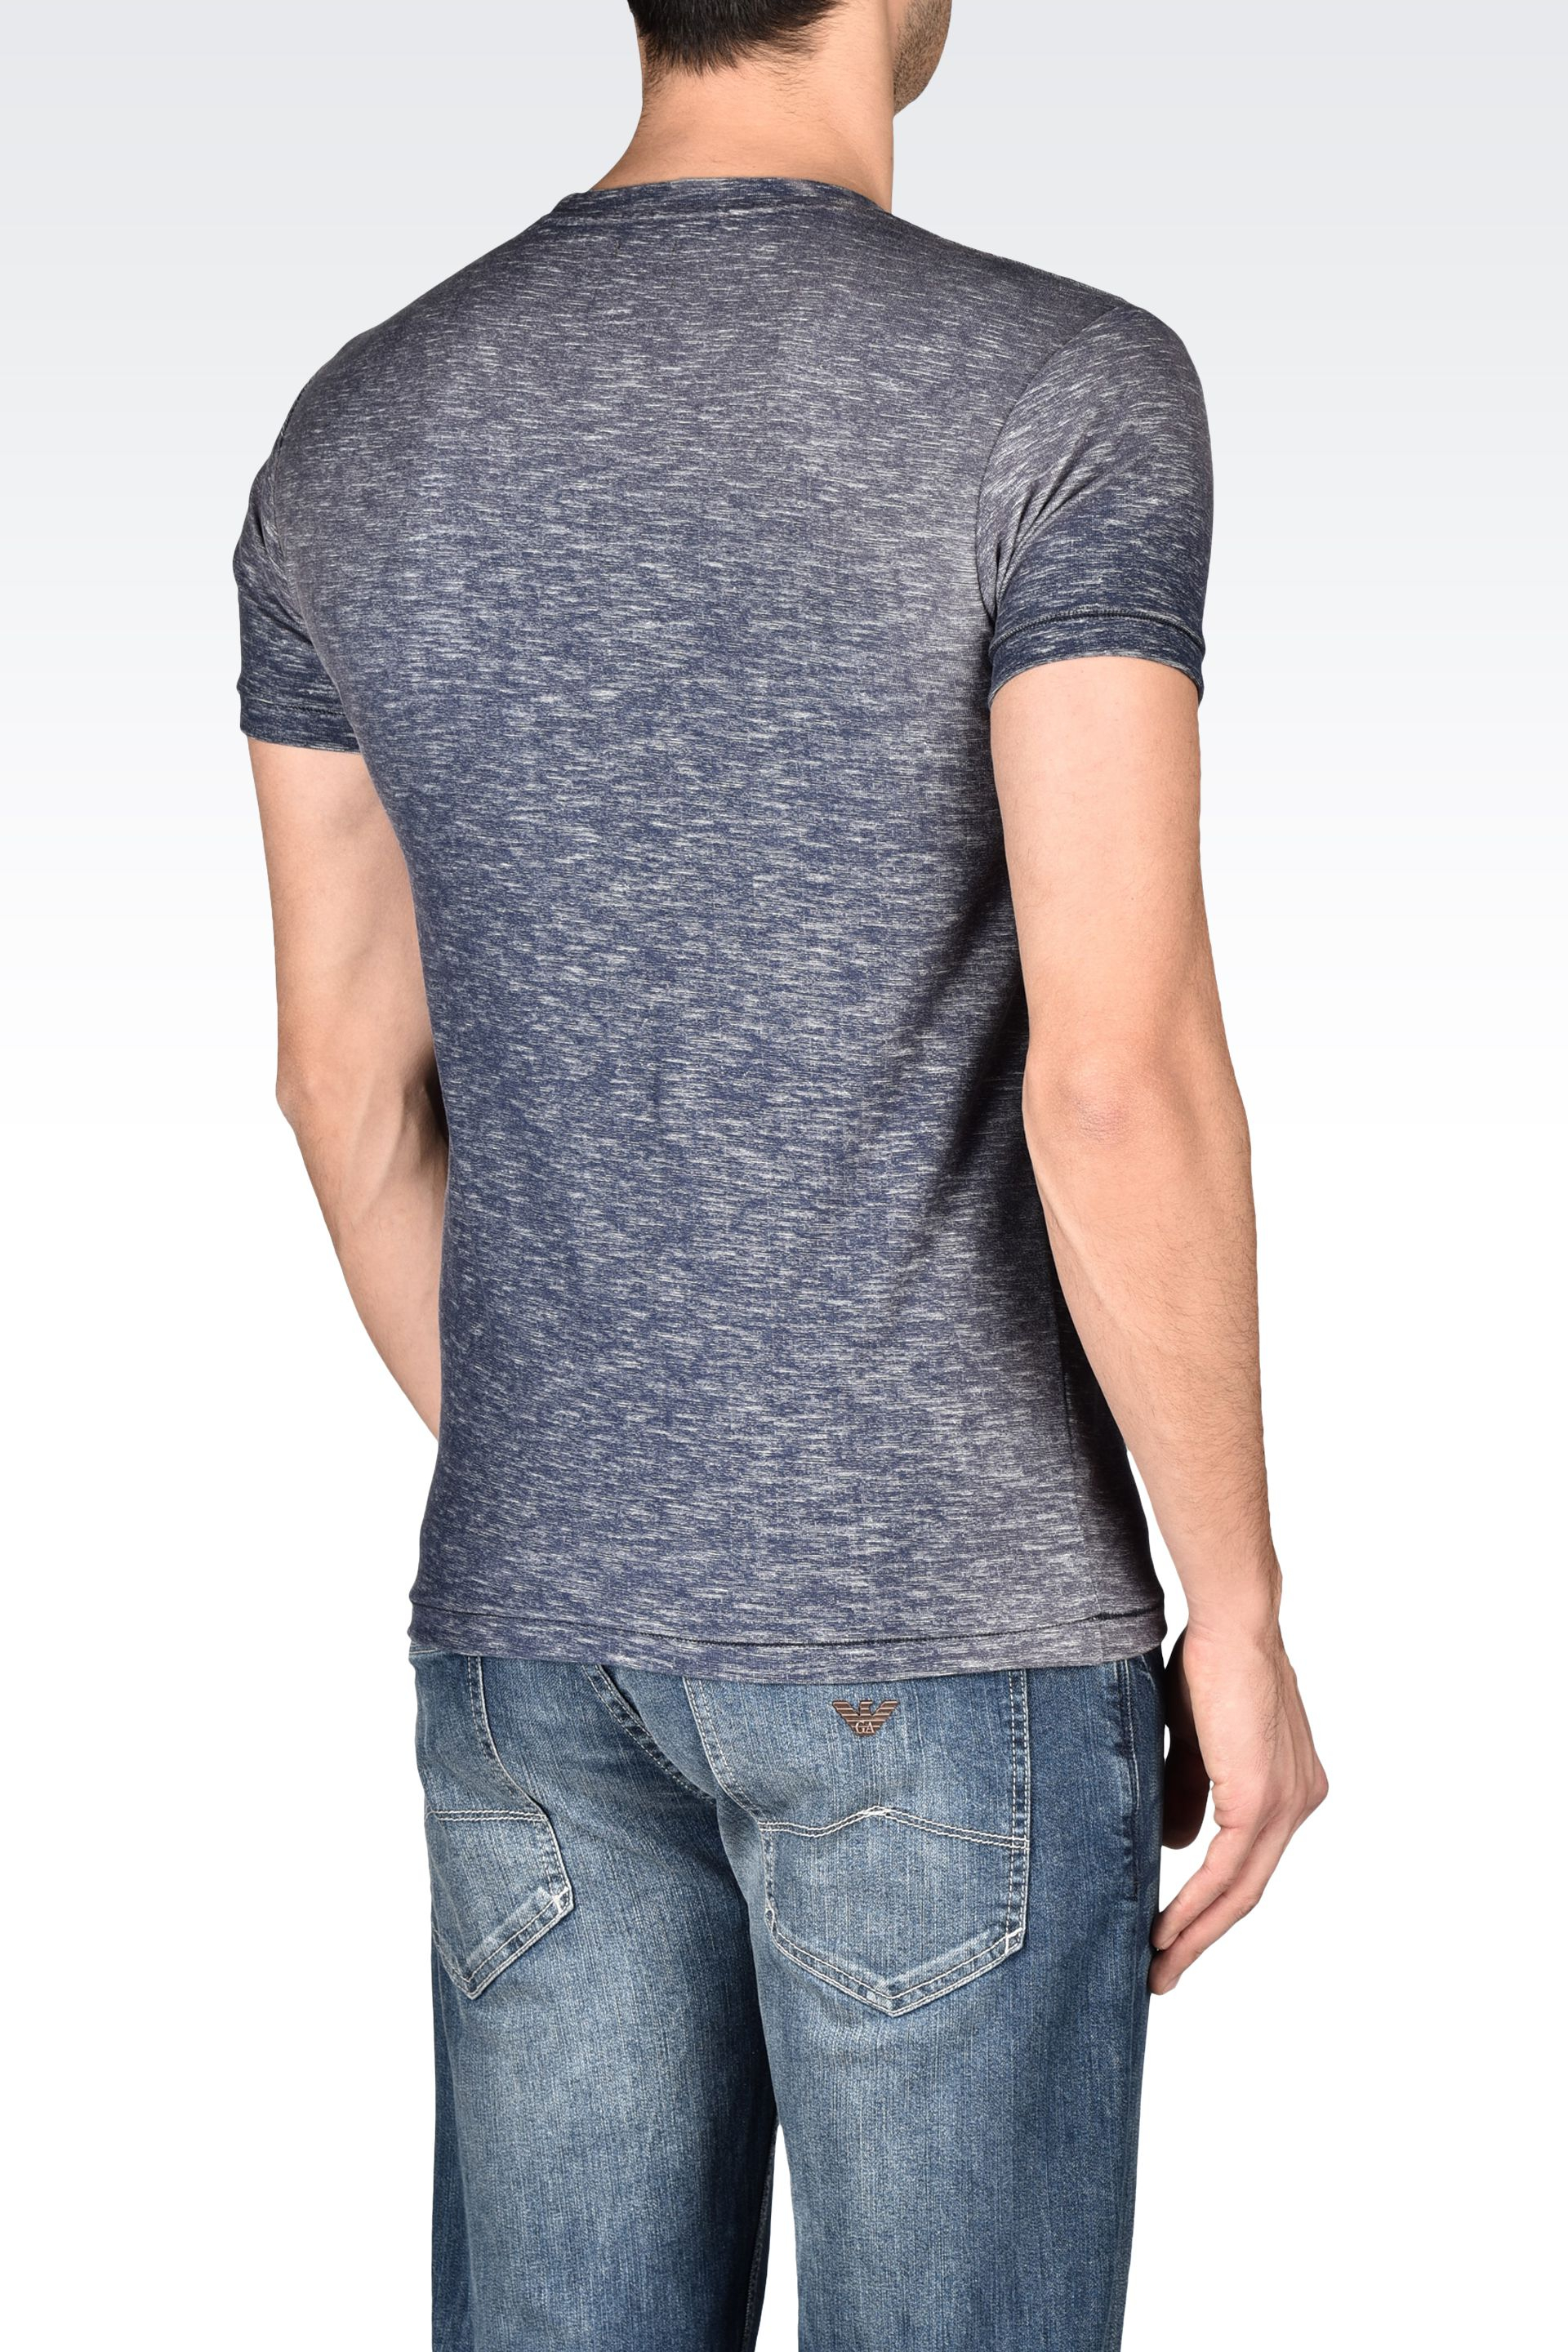 armani jeans t shirt in slub cotton jersey in blue for men. Black Bedroom Furniture Sets. Home Design Ideas